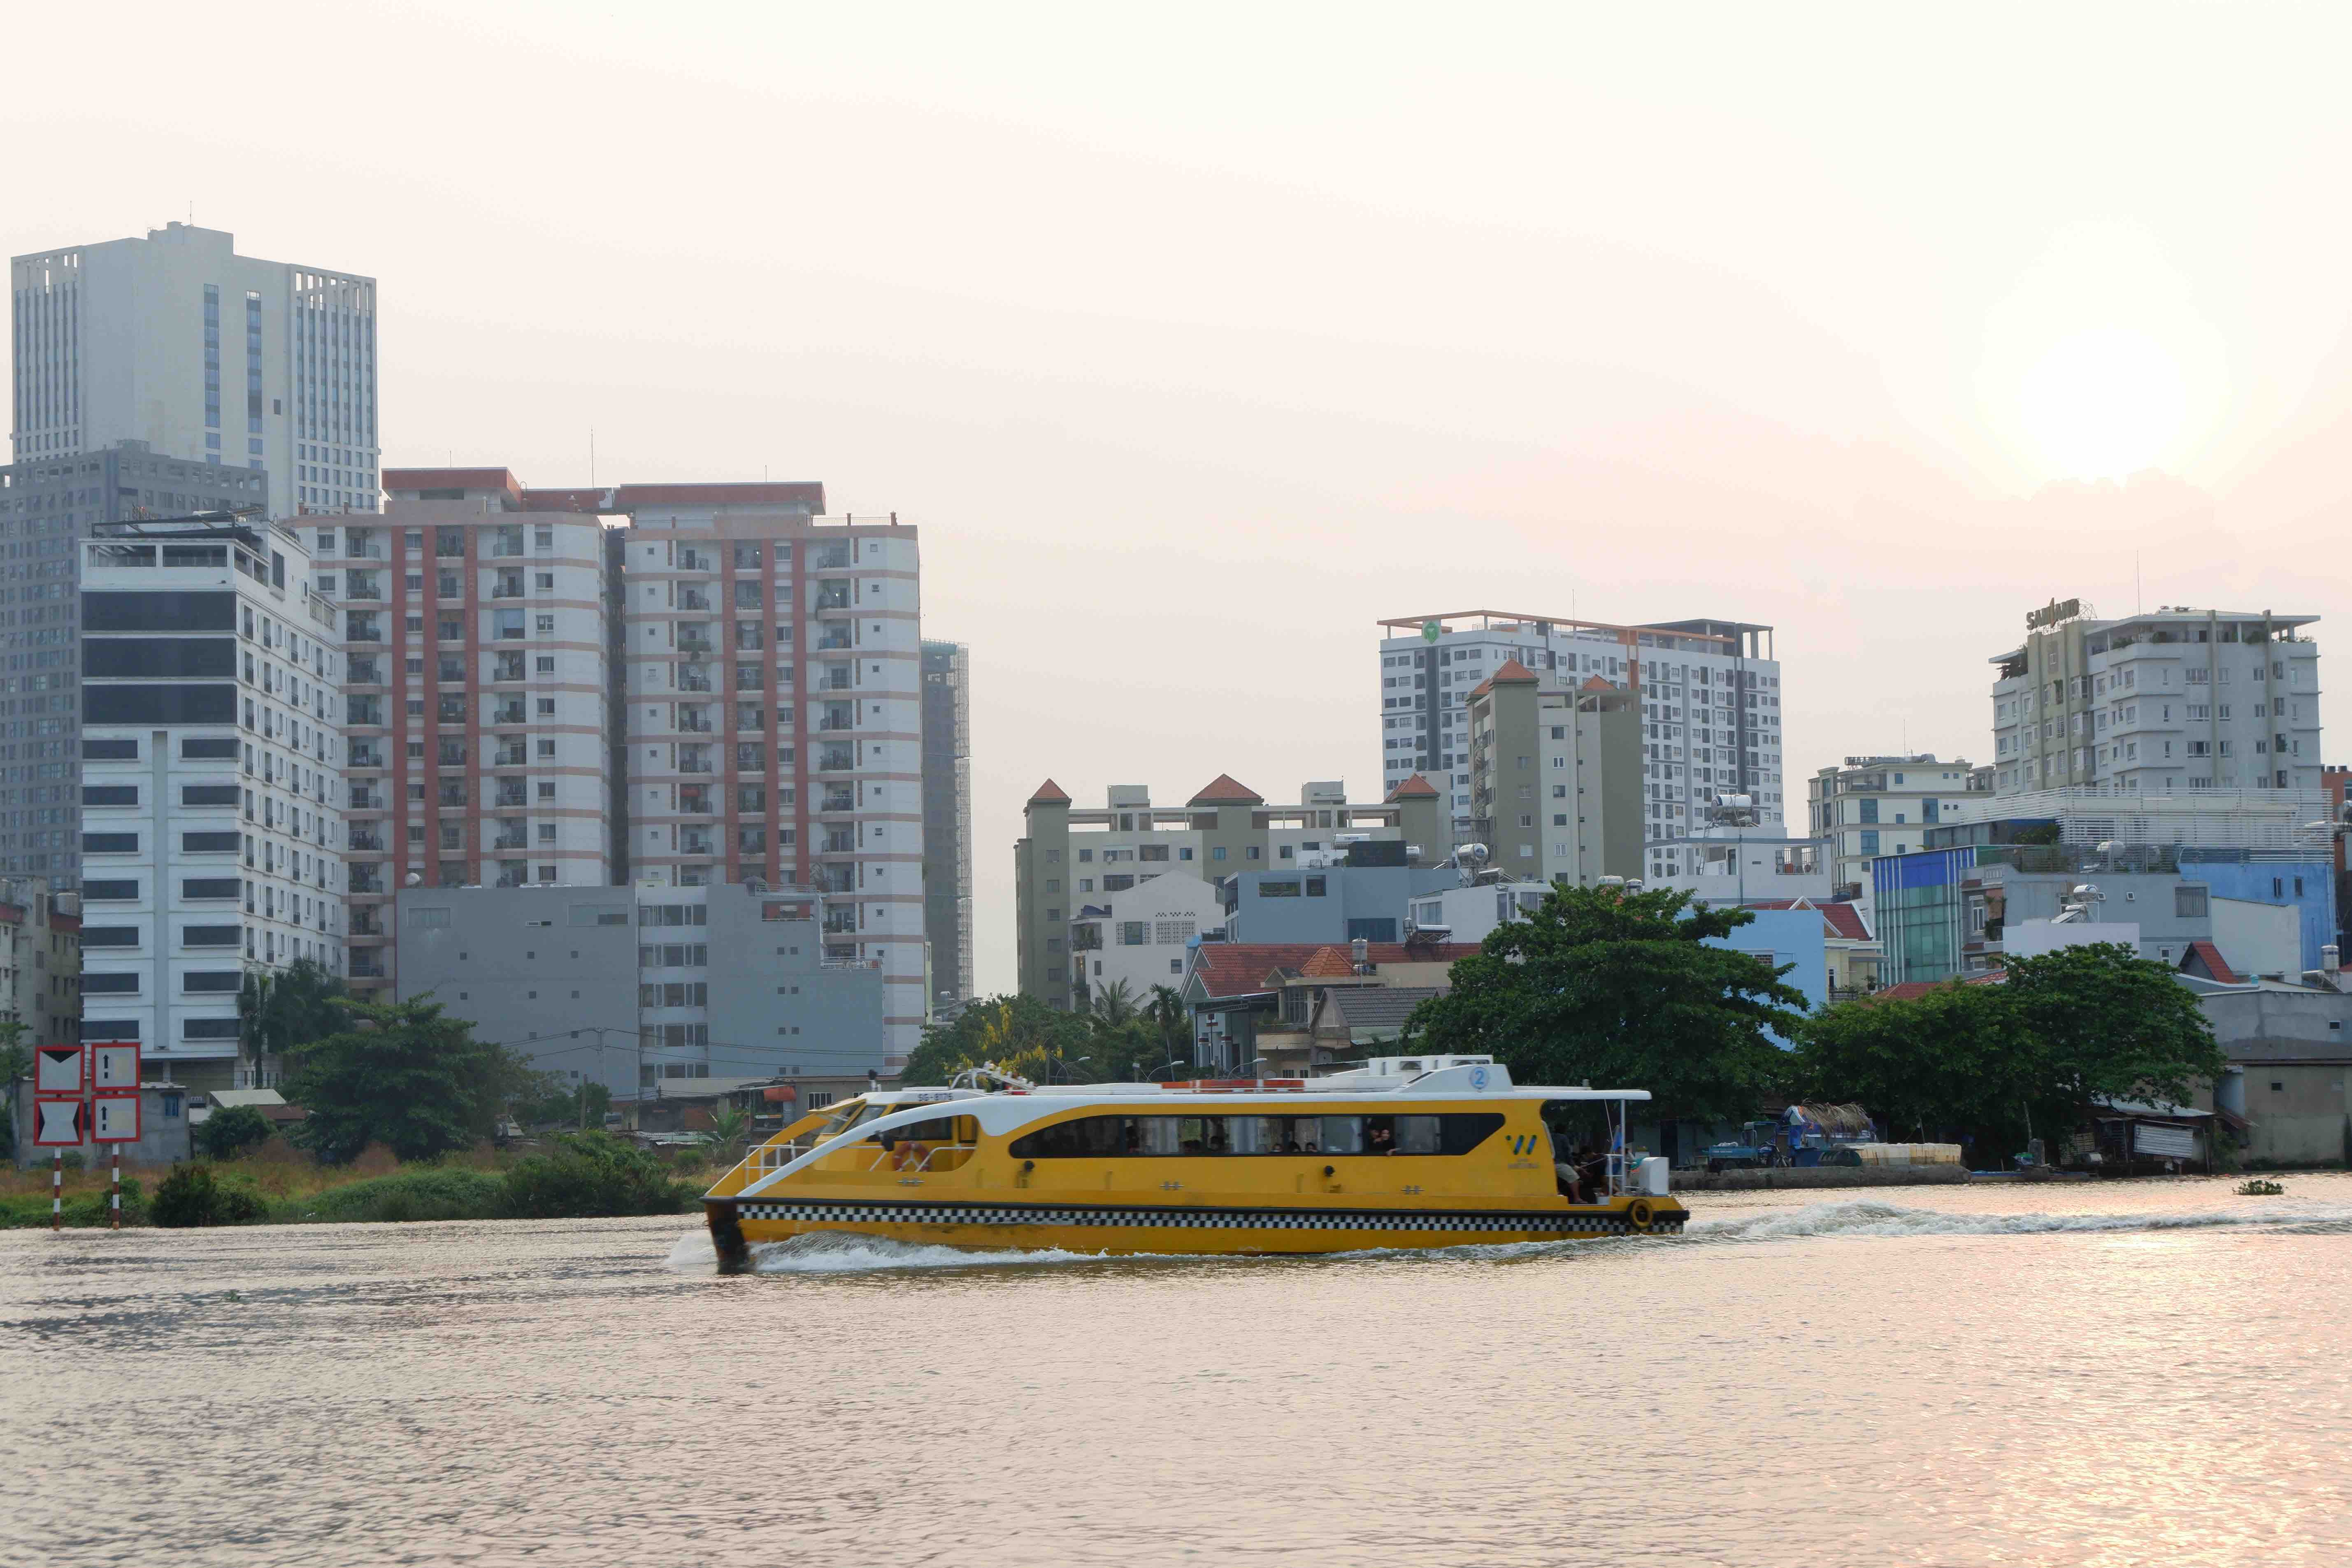 I took a cruise through Saigon by waterbus, and I was not disappointed